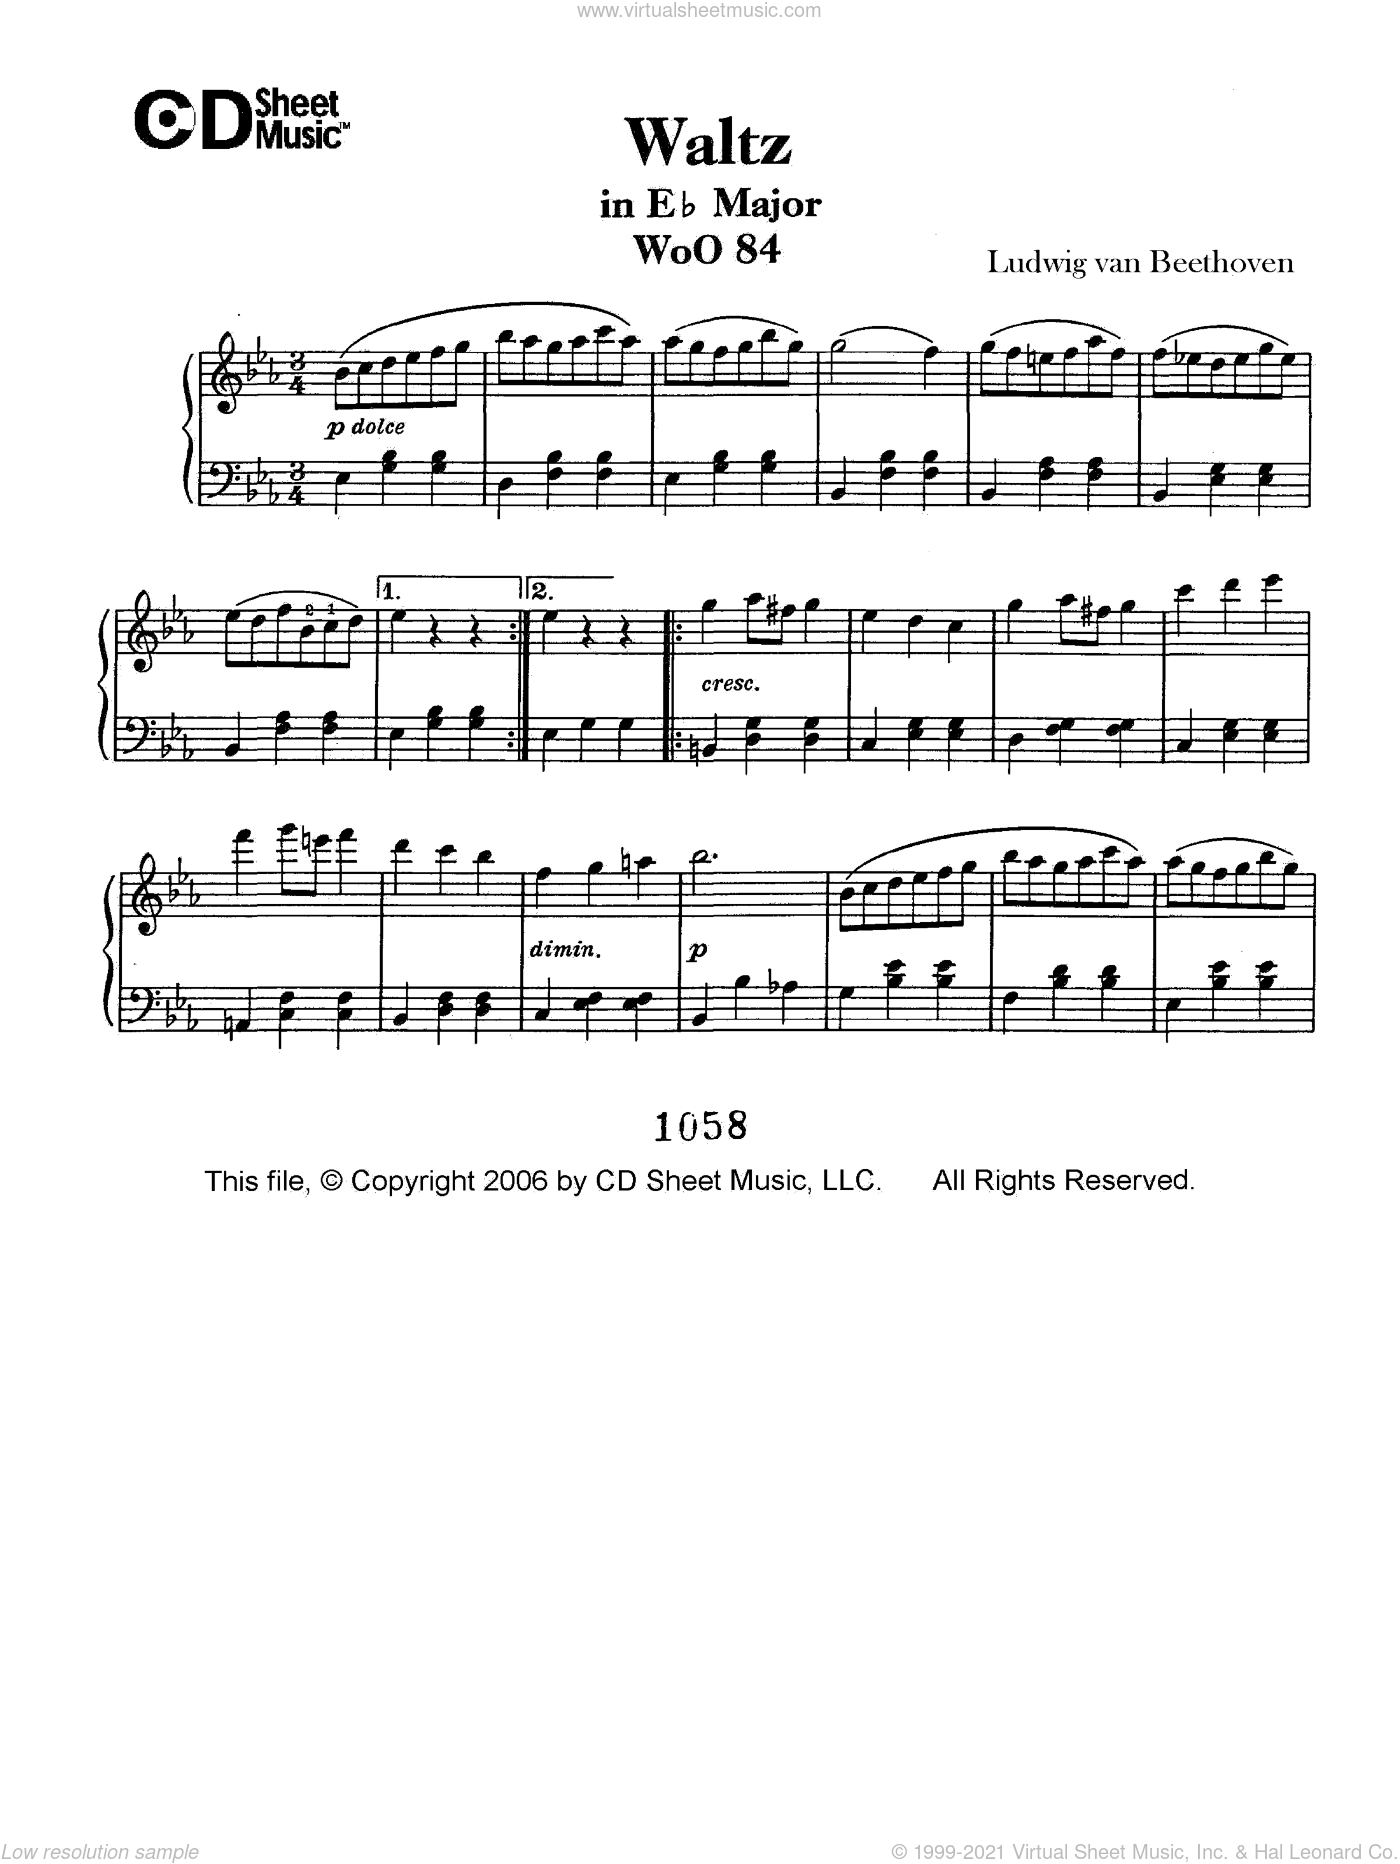 Waltz In E-flat Major, Woo 84 sheet music for piano solo by Ludwig van Beethoven, classical score, intermediate